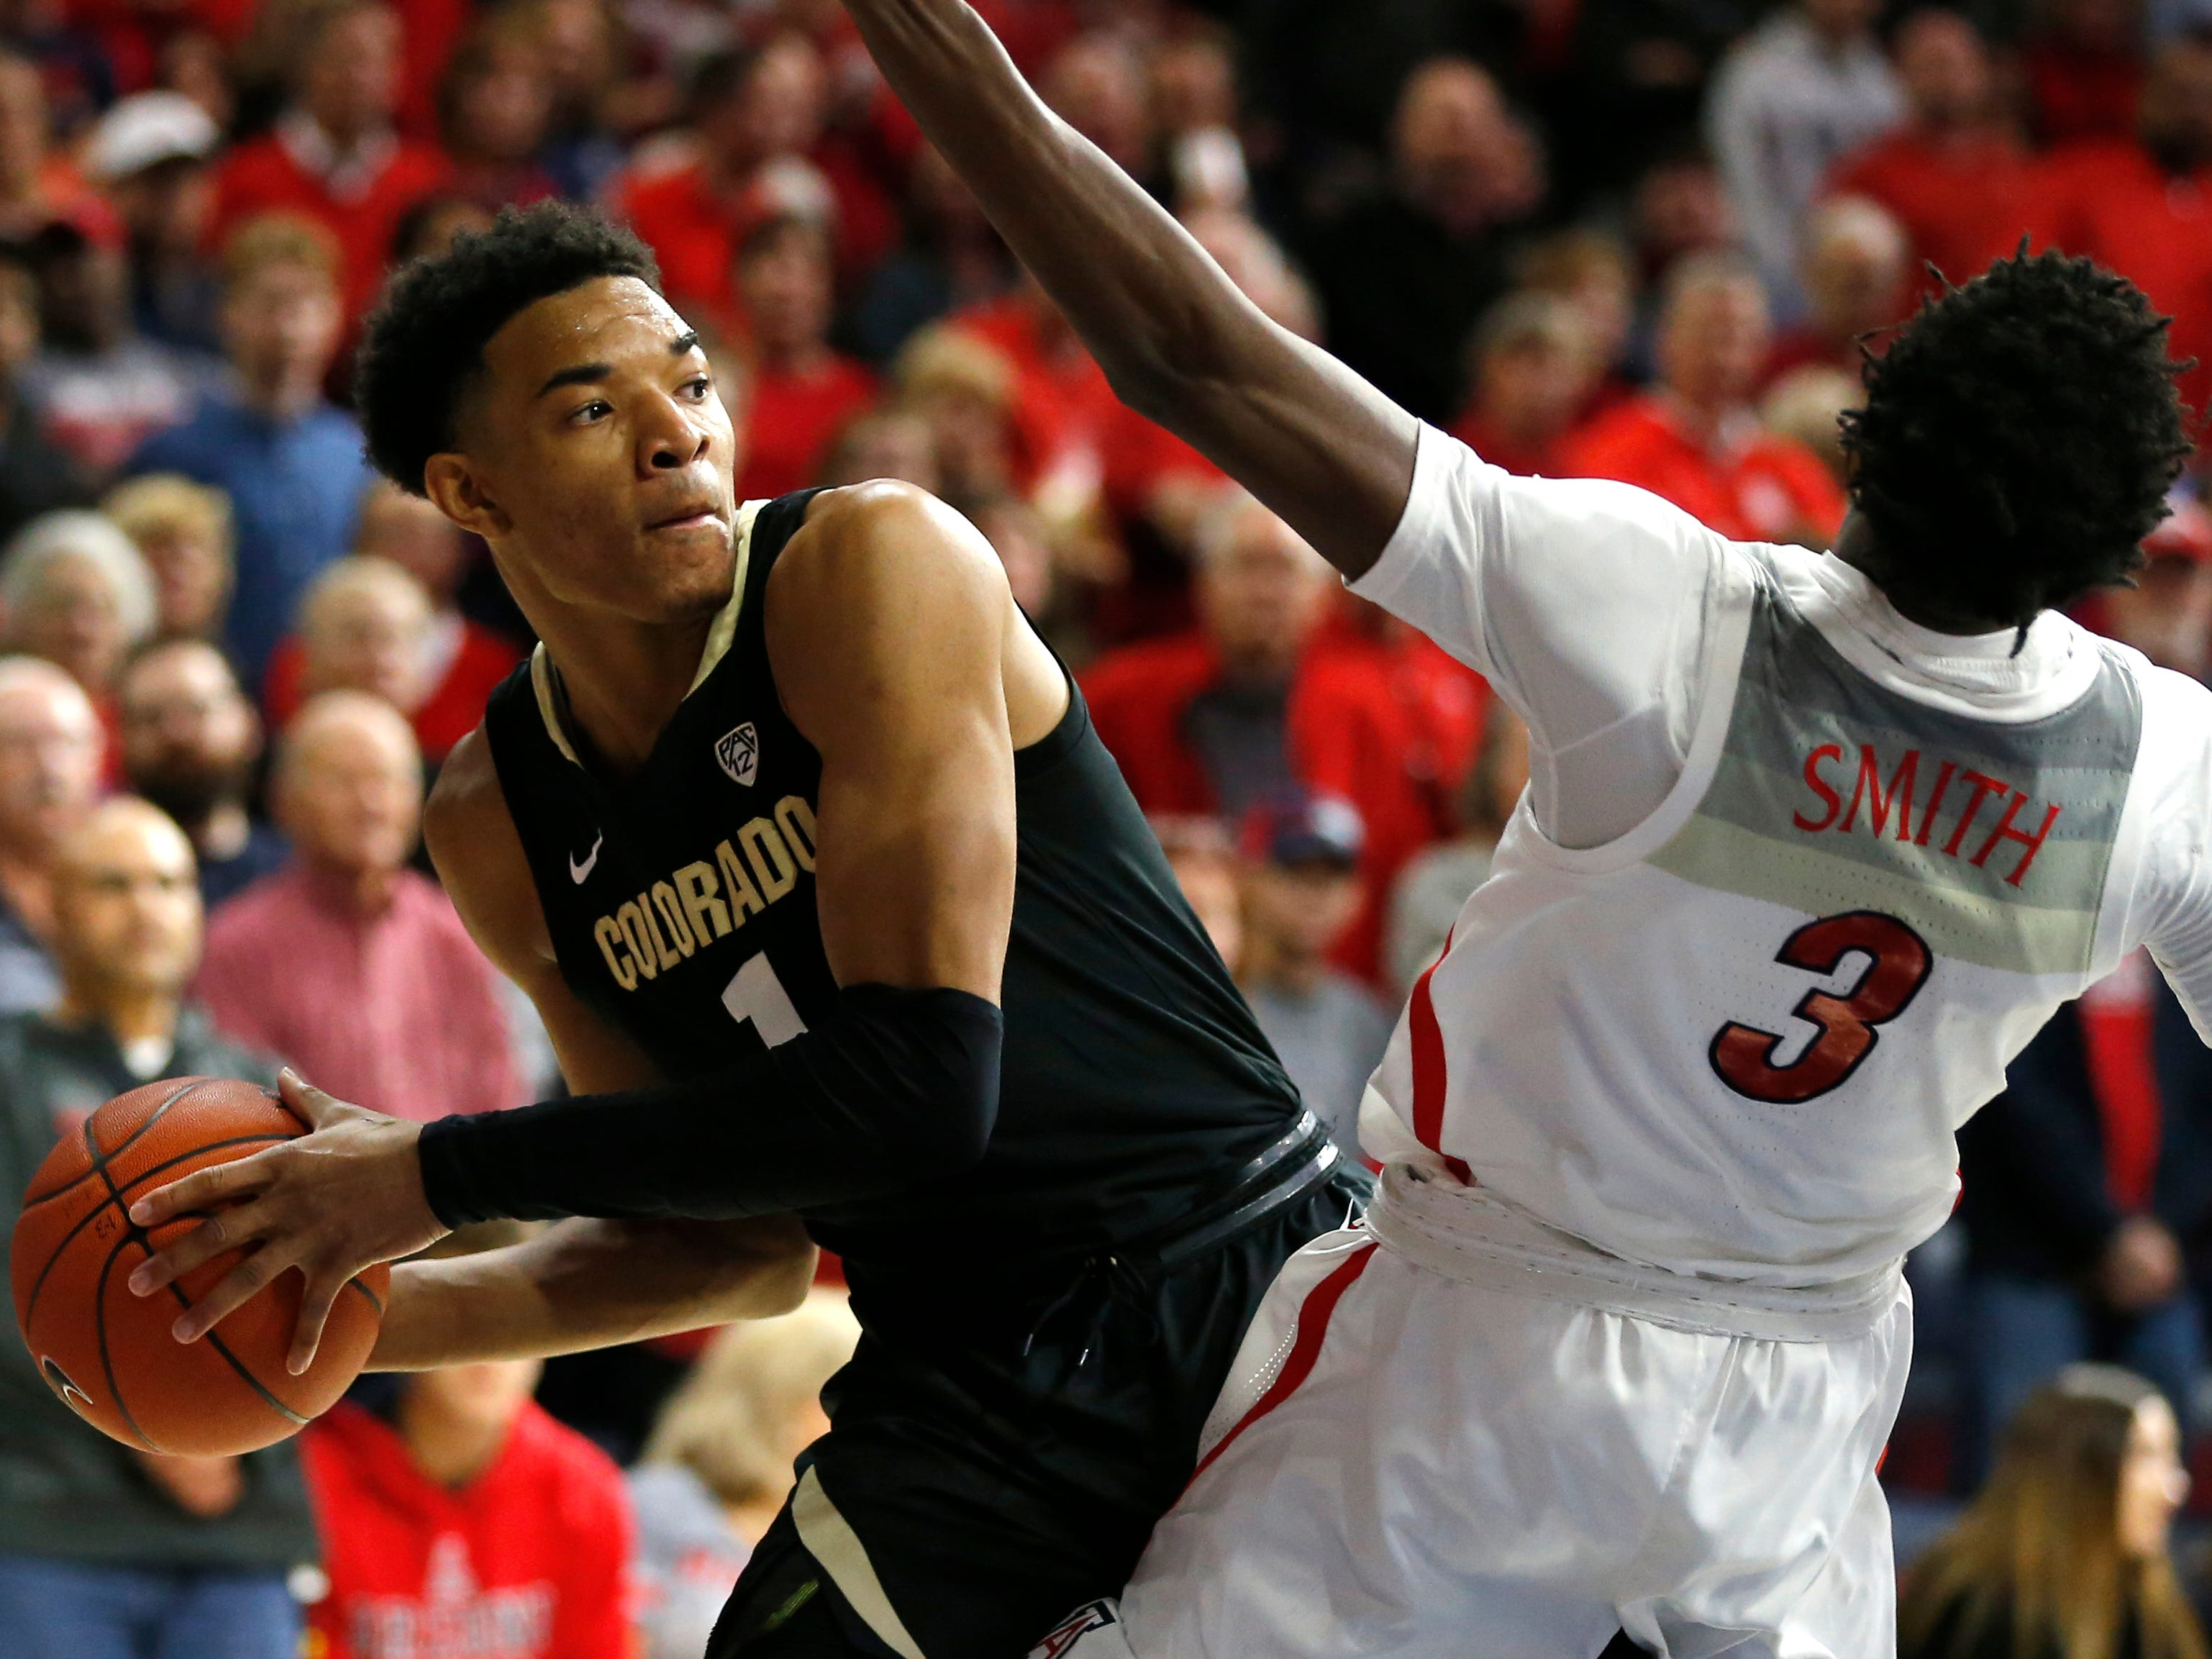 Colorado guard Tyler Bey (1) in the first half during an NCAA college basketball game against Arizona, Thursday, Jan. 3, 2019, in Tucson, Ariz. (AP Photo/Rick Scuteri)